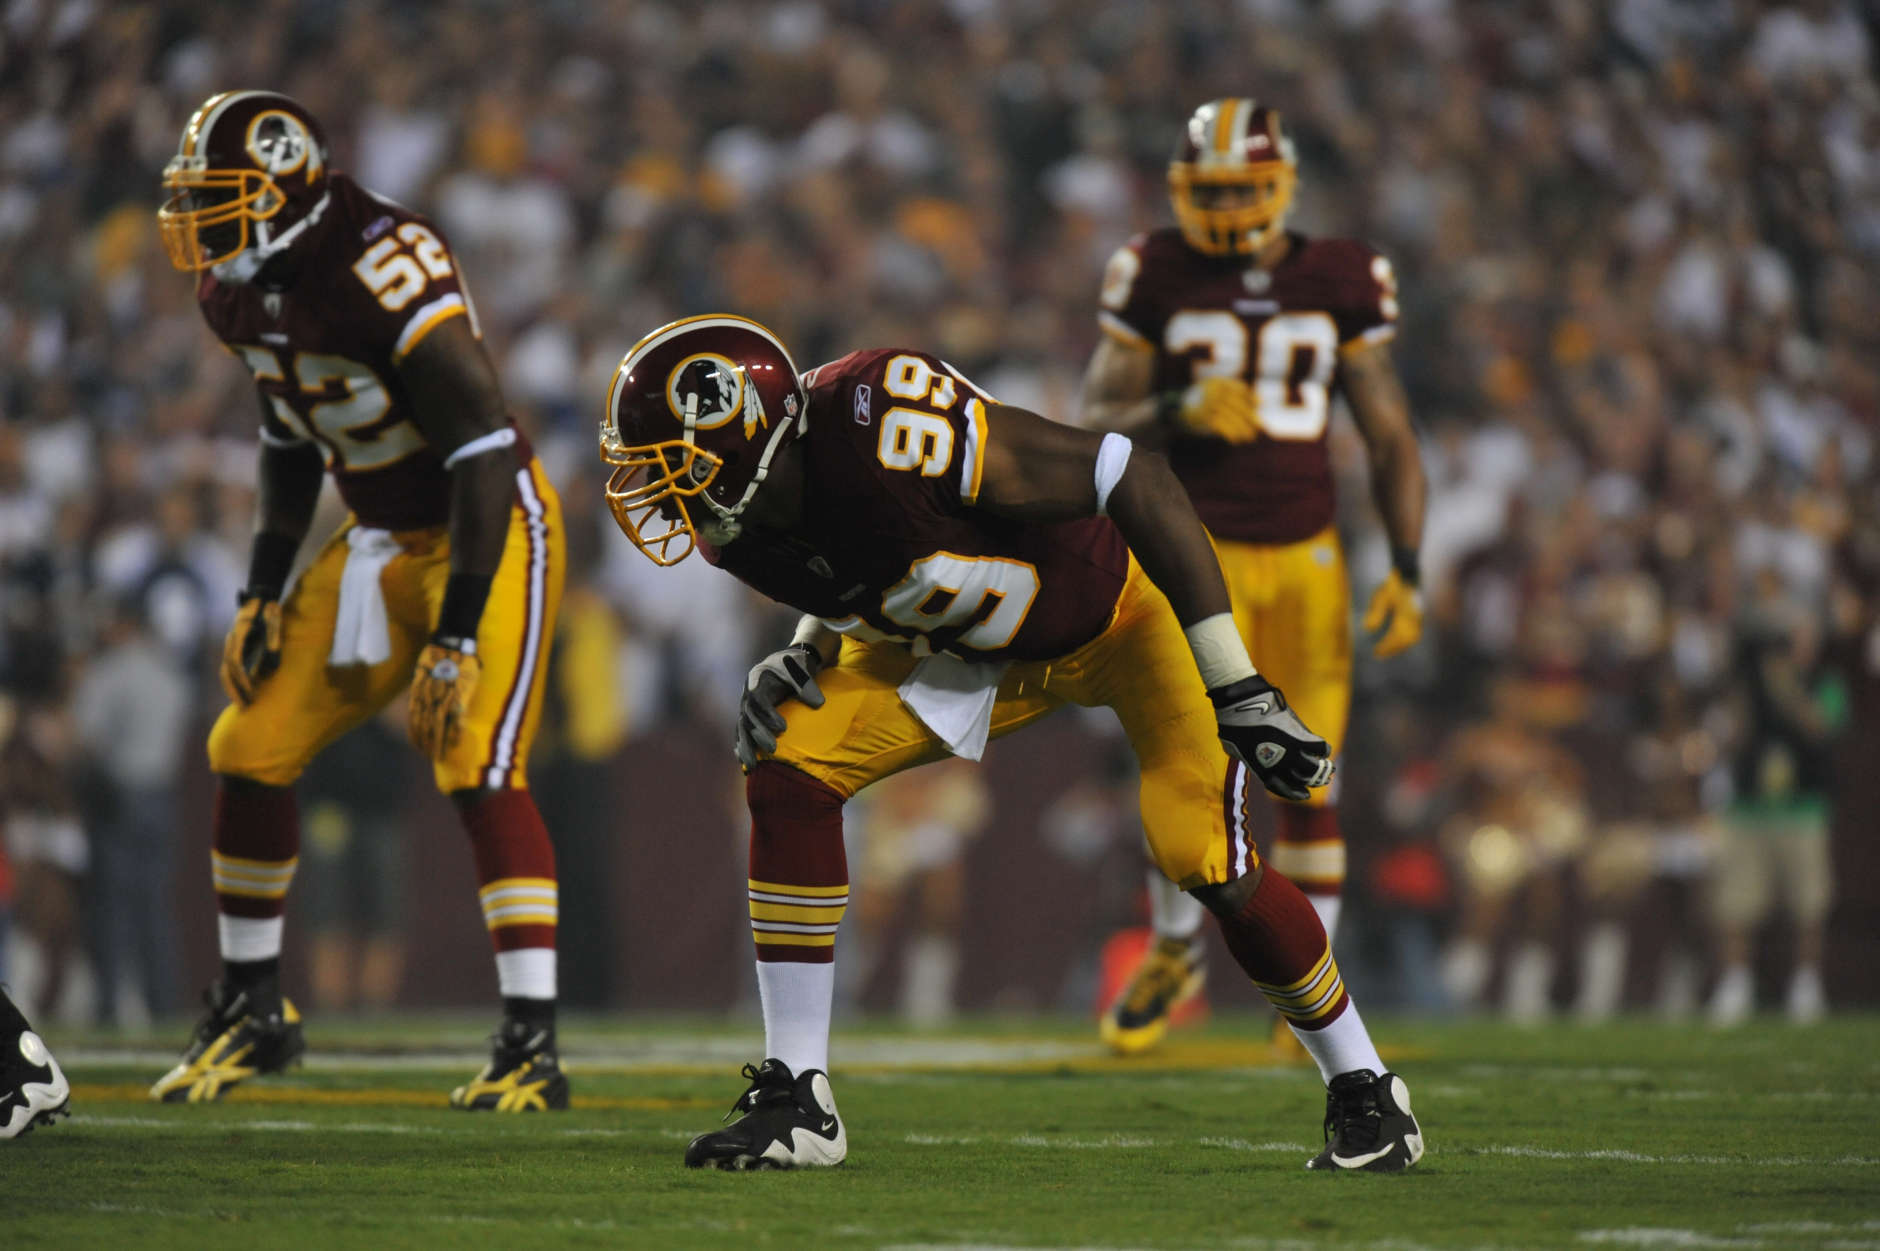 LANDOVER - SEPTEMBER 12:  Andre Carter #99 of the Washington Redskins defends during the NFL season opener against the Dallas Cowboys at FedExField on September 12, 2010 in Landover, Maryland. The Redskins defeated the Cowboys 13-7. (Photo by Larry French/Getty Images)